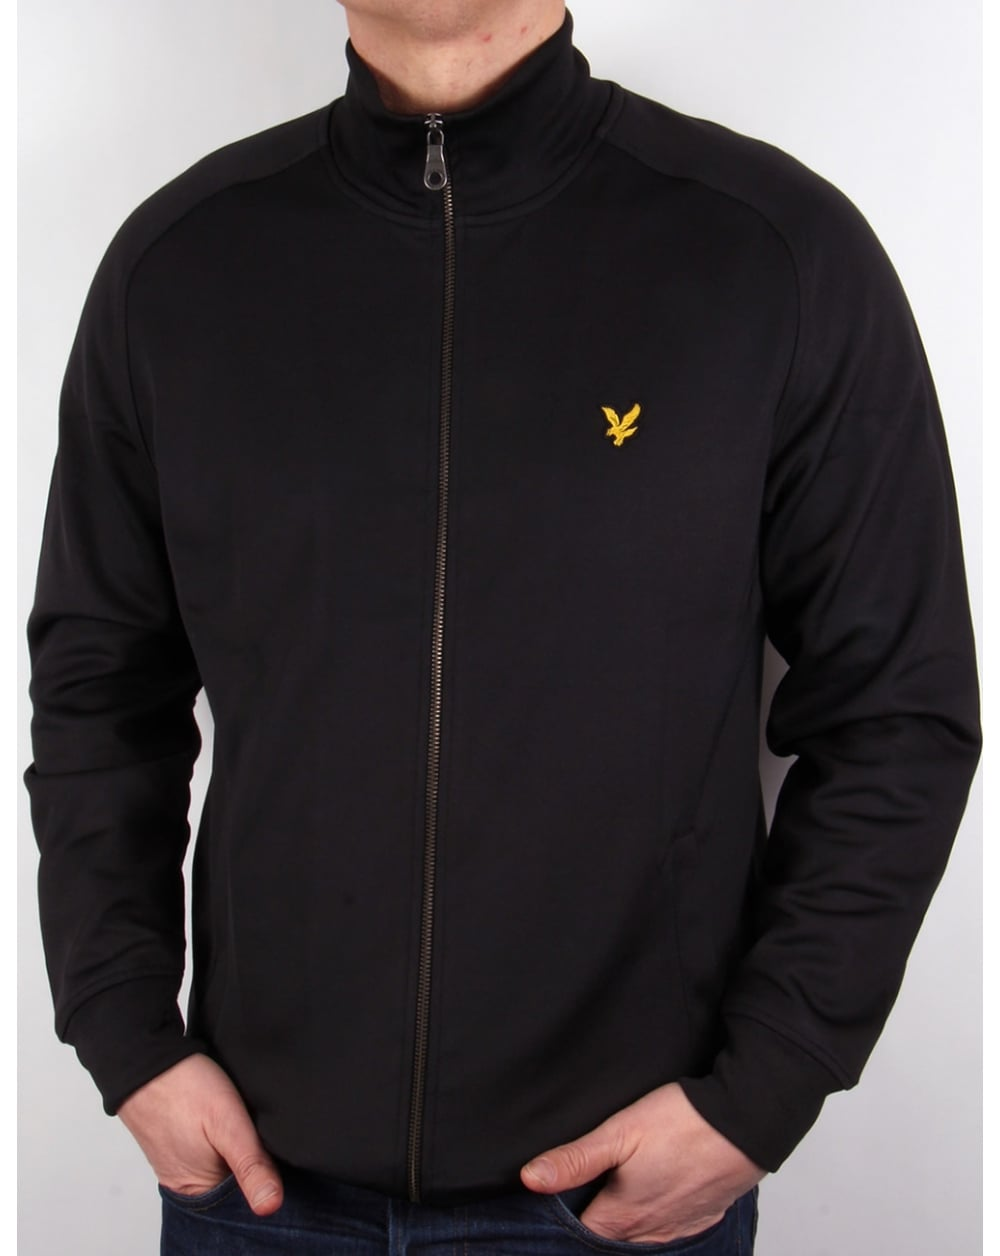 lyle and scott tricot track jacket black tracksuit top mens. Black Bedroom Furniture Sets. Home Design Ideas